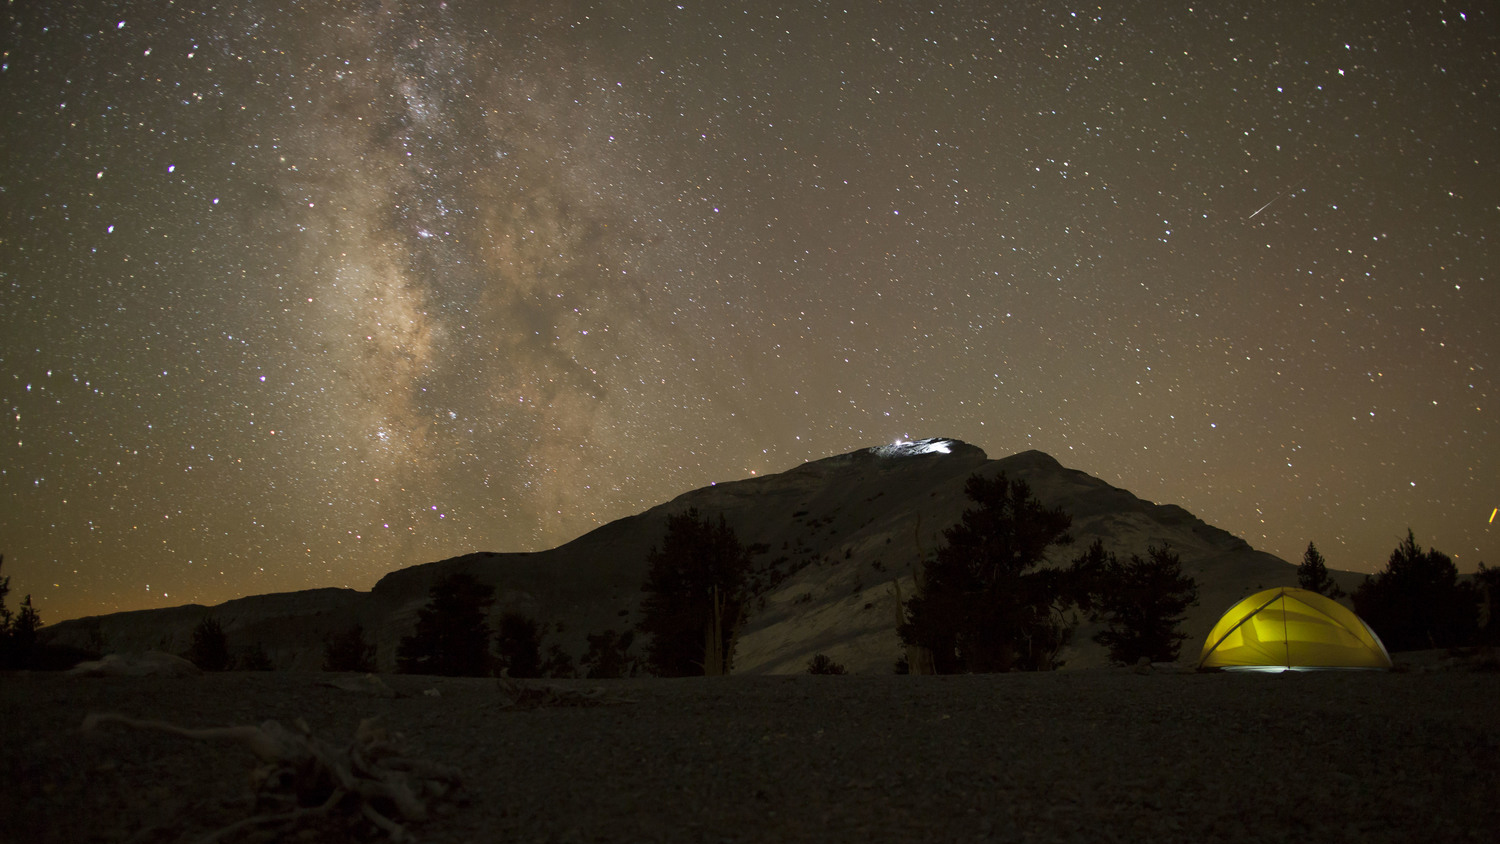 20120915+Great+Basin+Time+Lapse-Tent.jpg